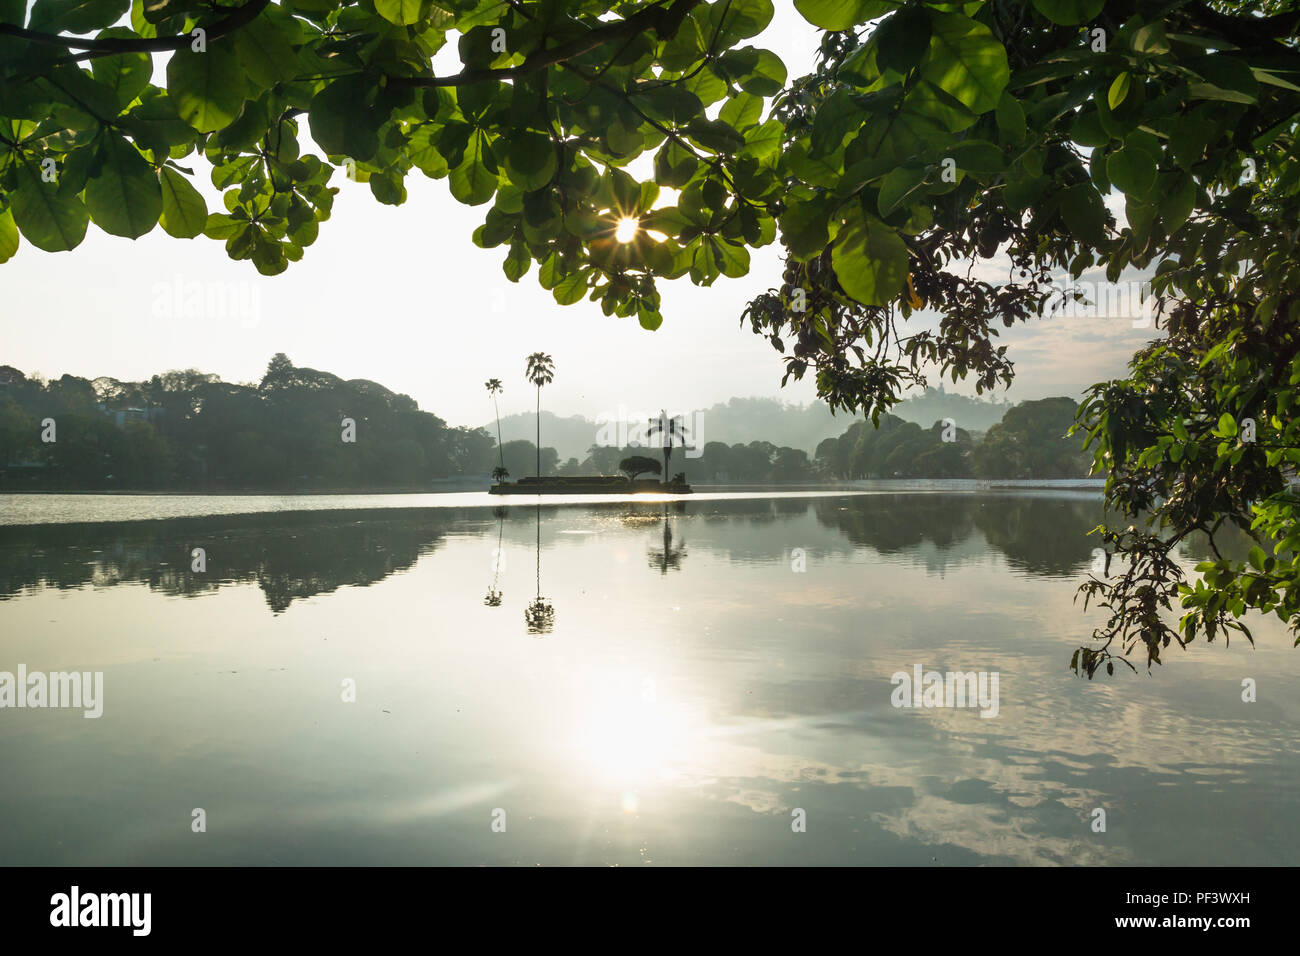 Last sun coming through leaves at Kandy Lake with view to the island, Kandy, Sri Lanka - Stock Image